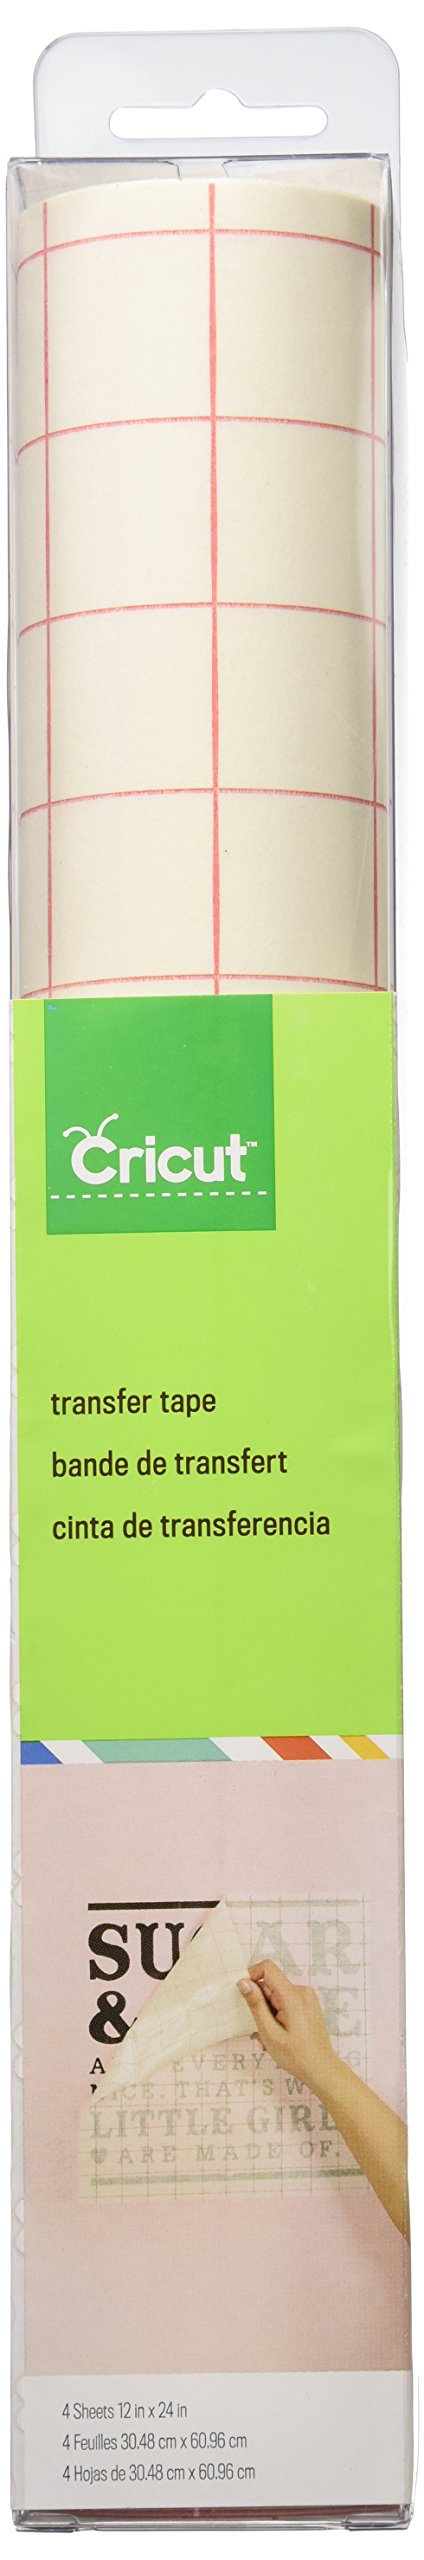 Cricut Vinyl Transfer Tape